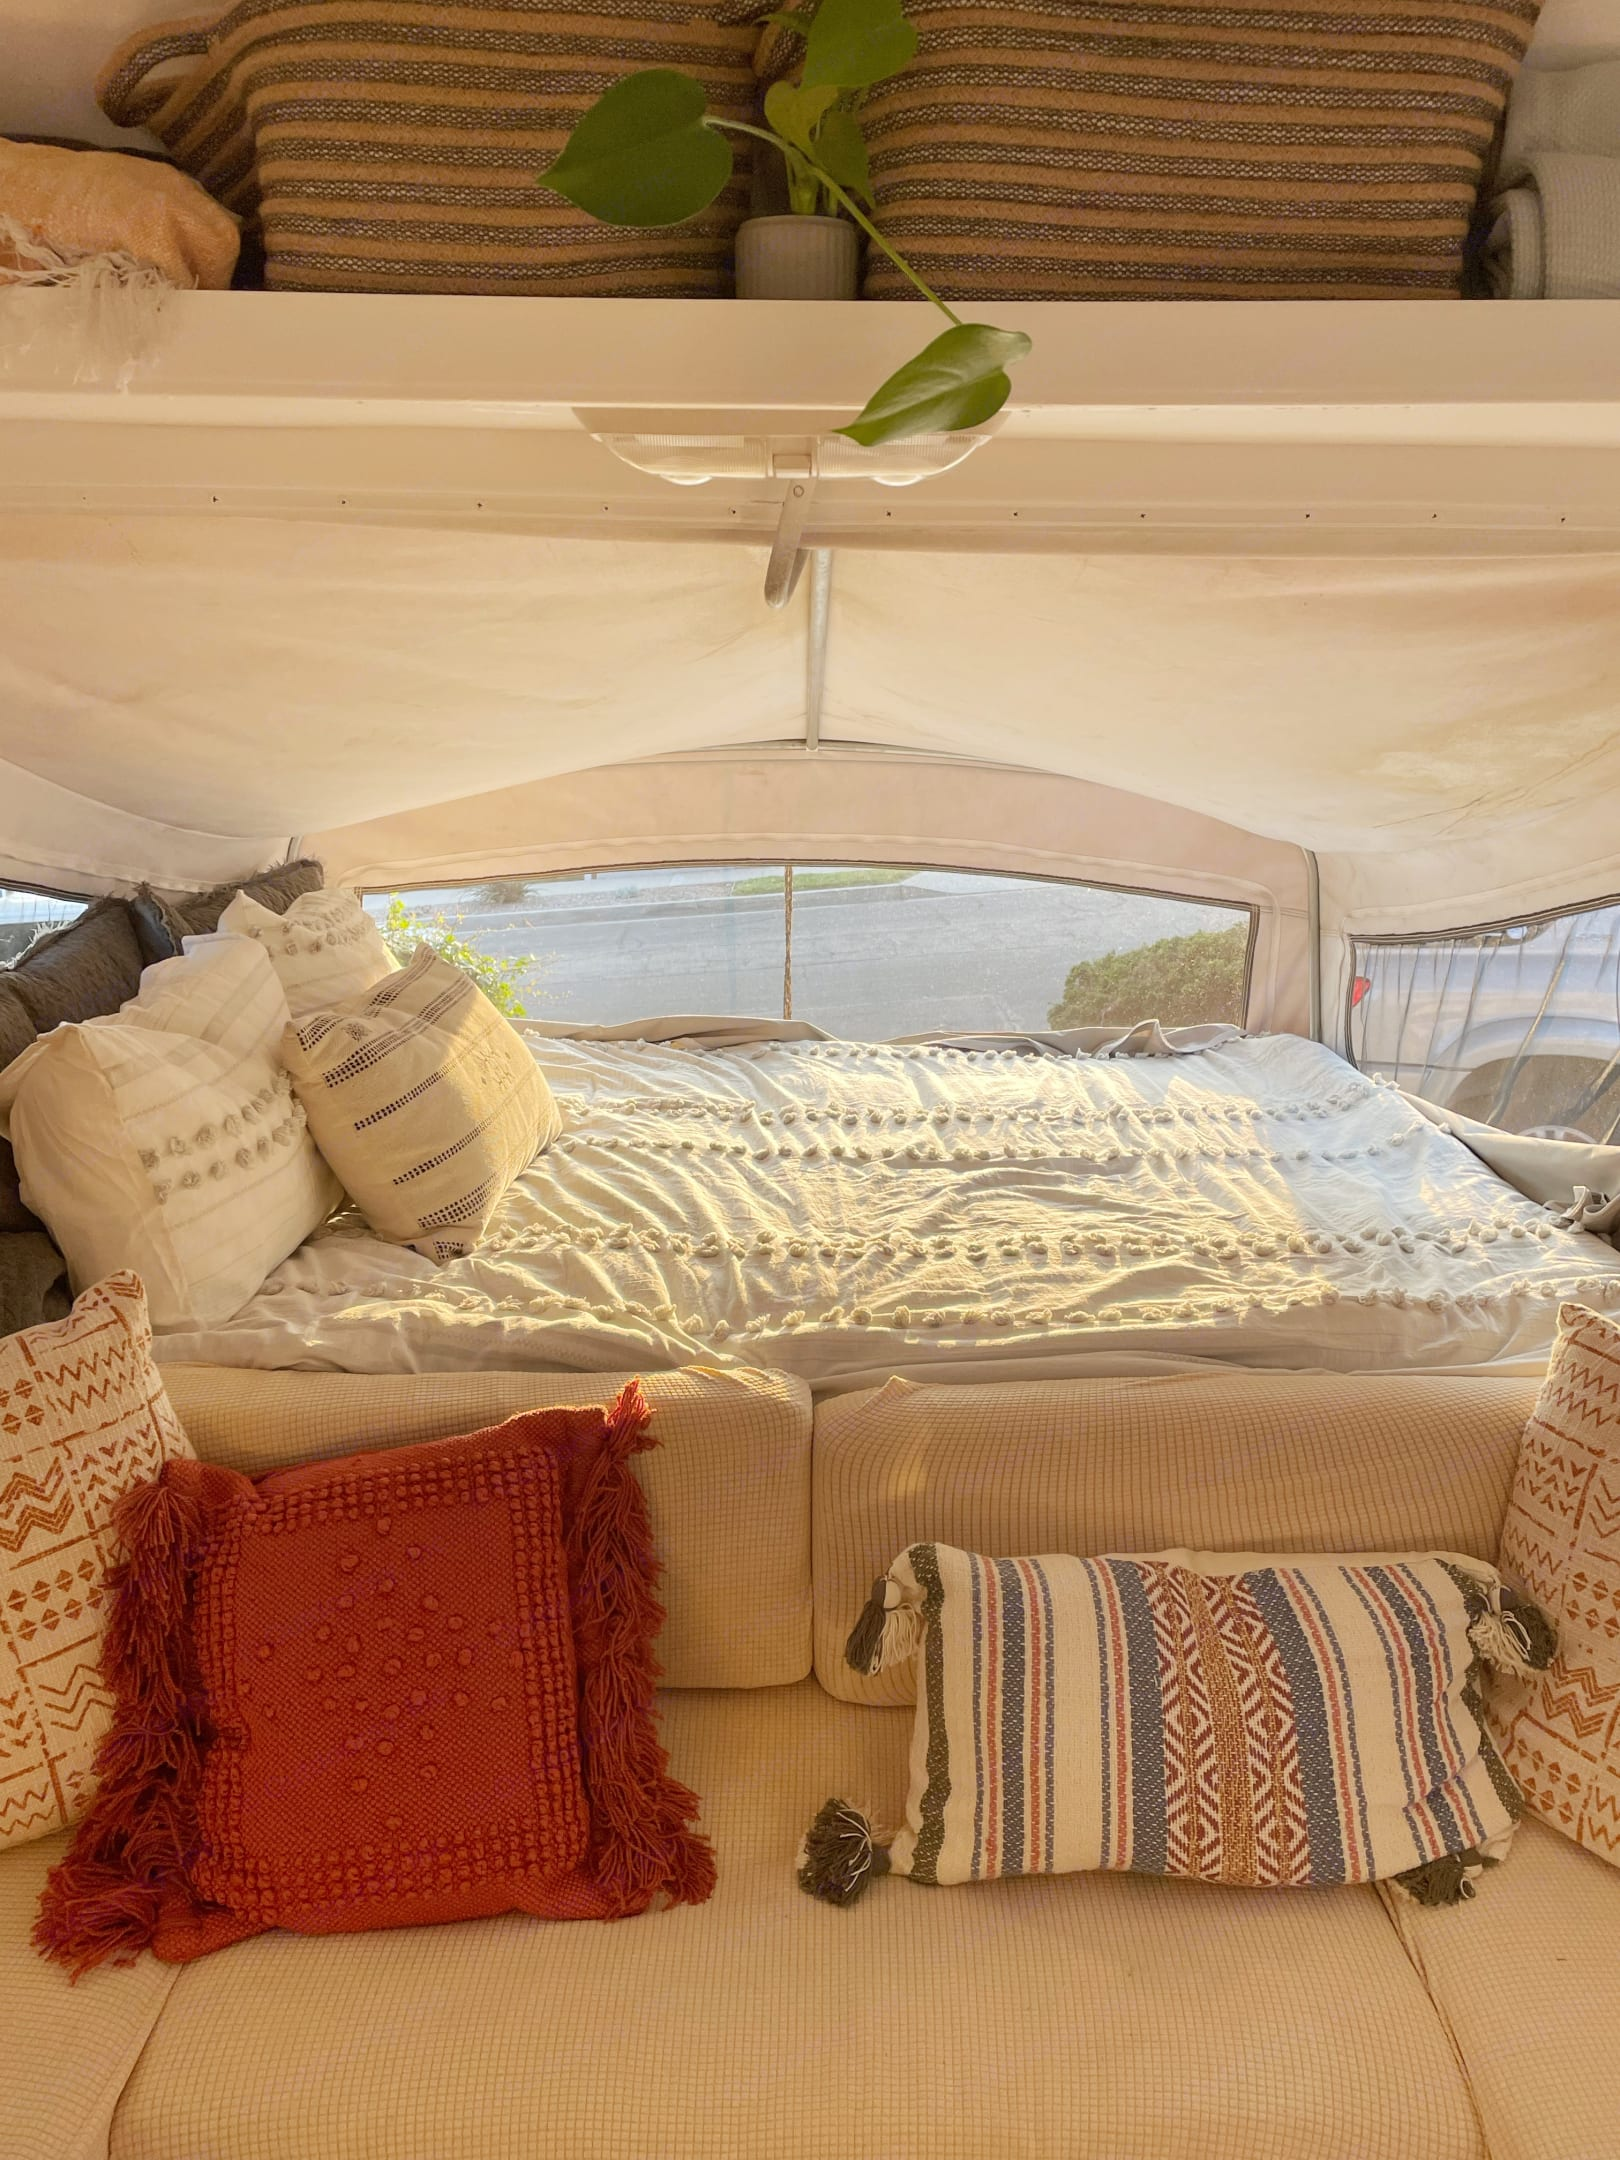 Cozy linens and surrounded by windows. The perfect place for your morning coffee.. Fleetwood Prowler Lynx 2001